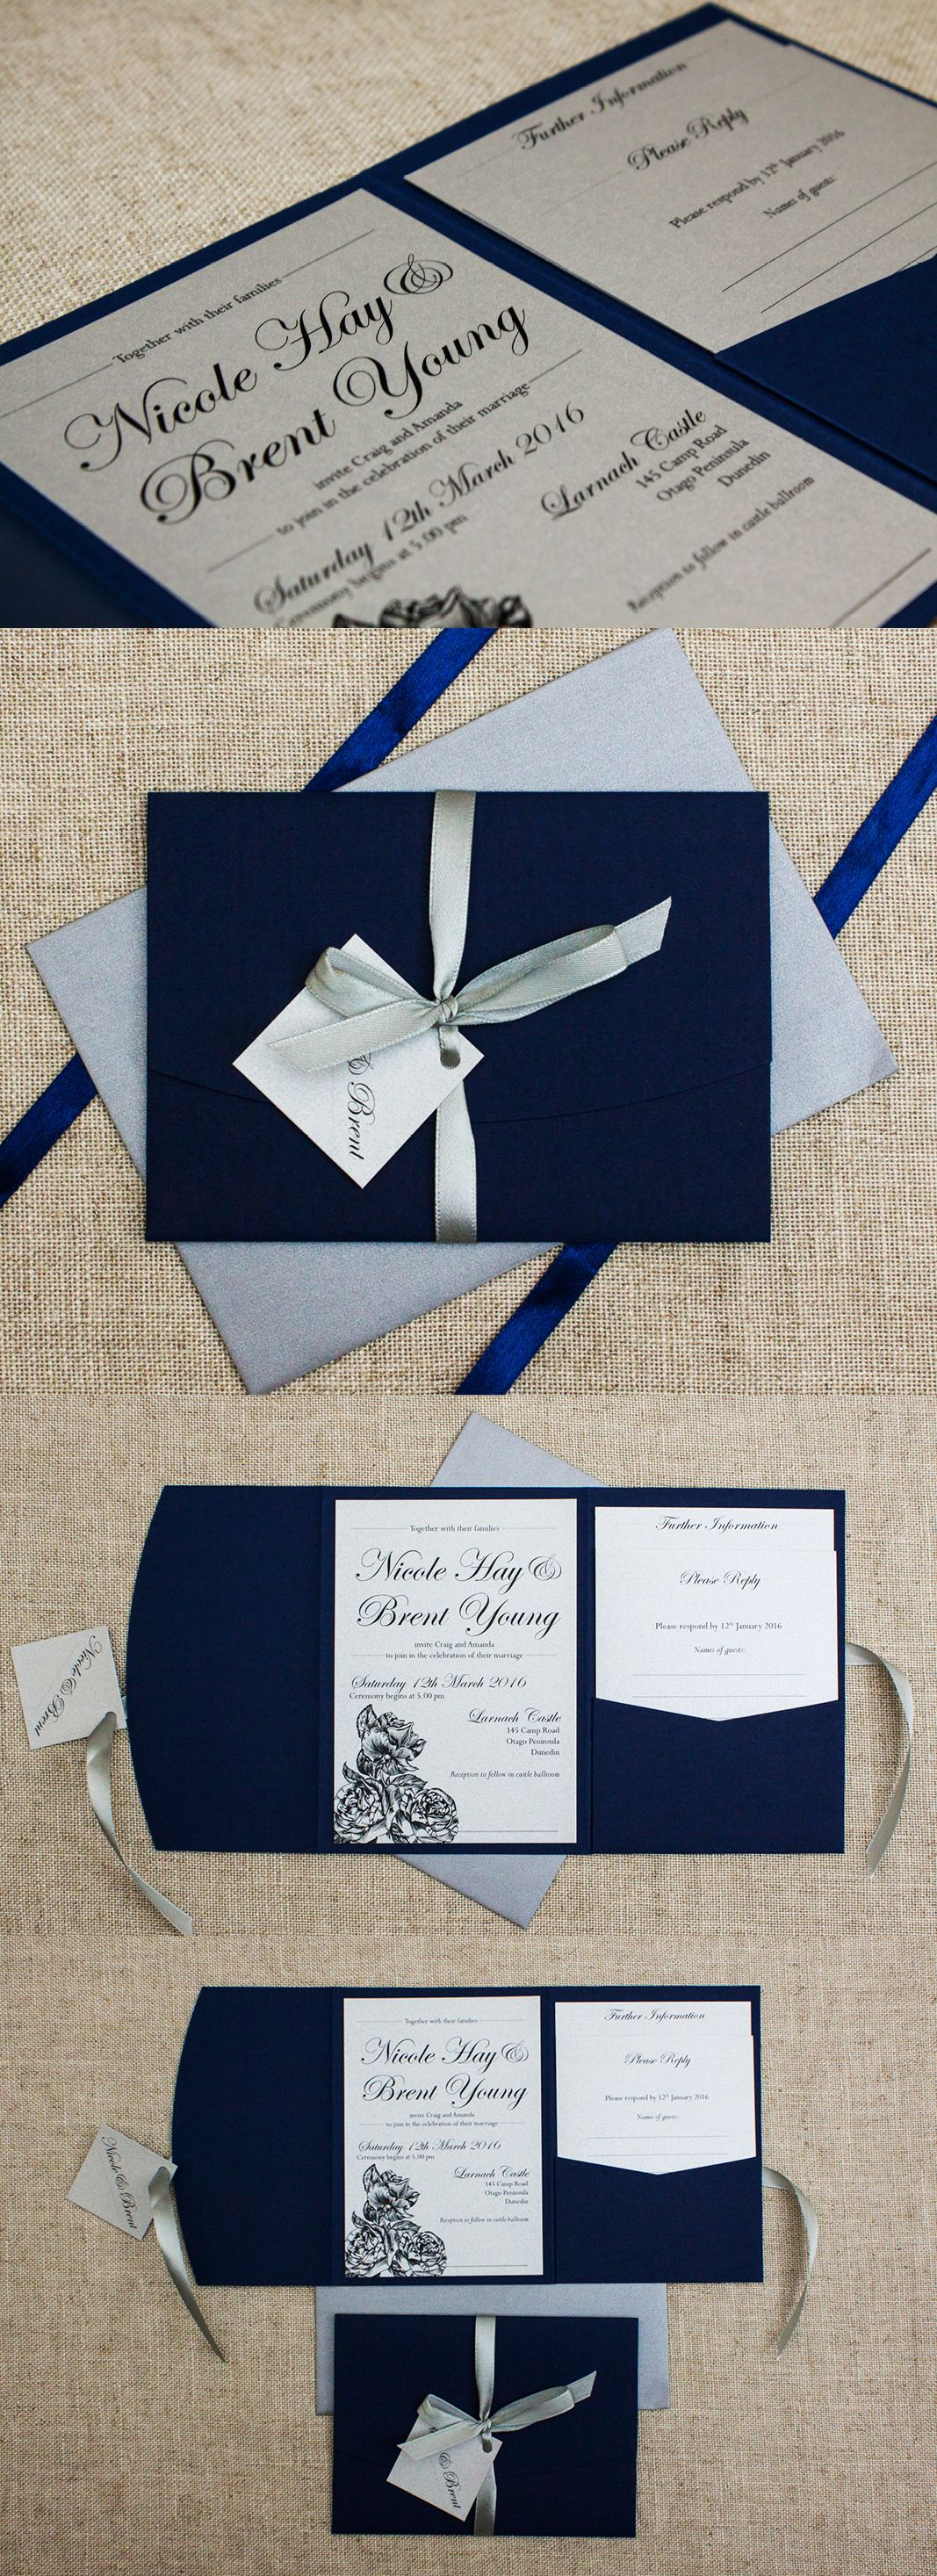 Rustic Etched Roses Pocketfold Wedding Invitation | Pinterest ...